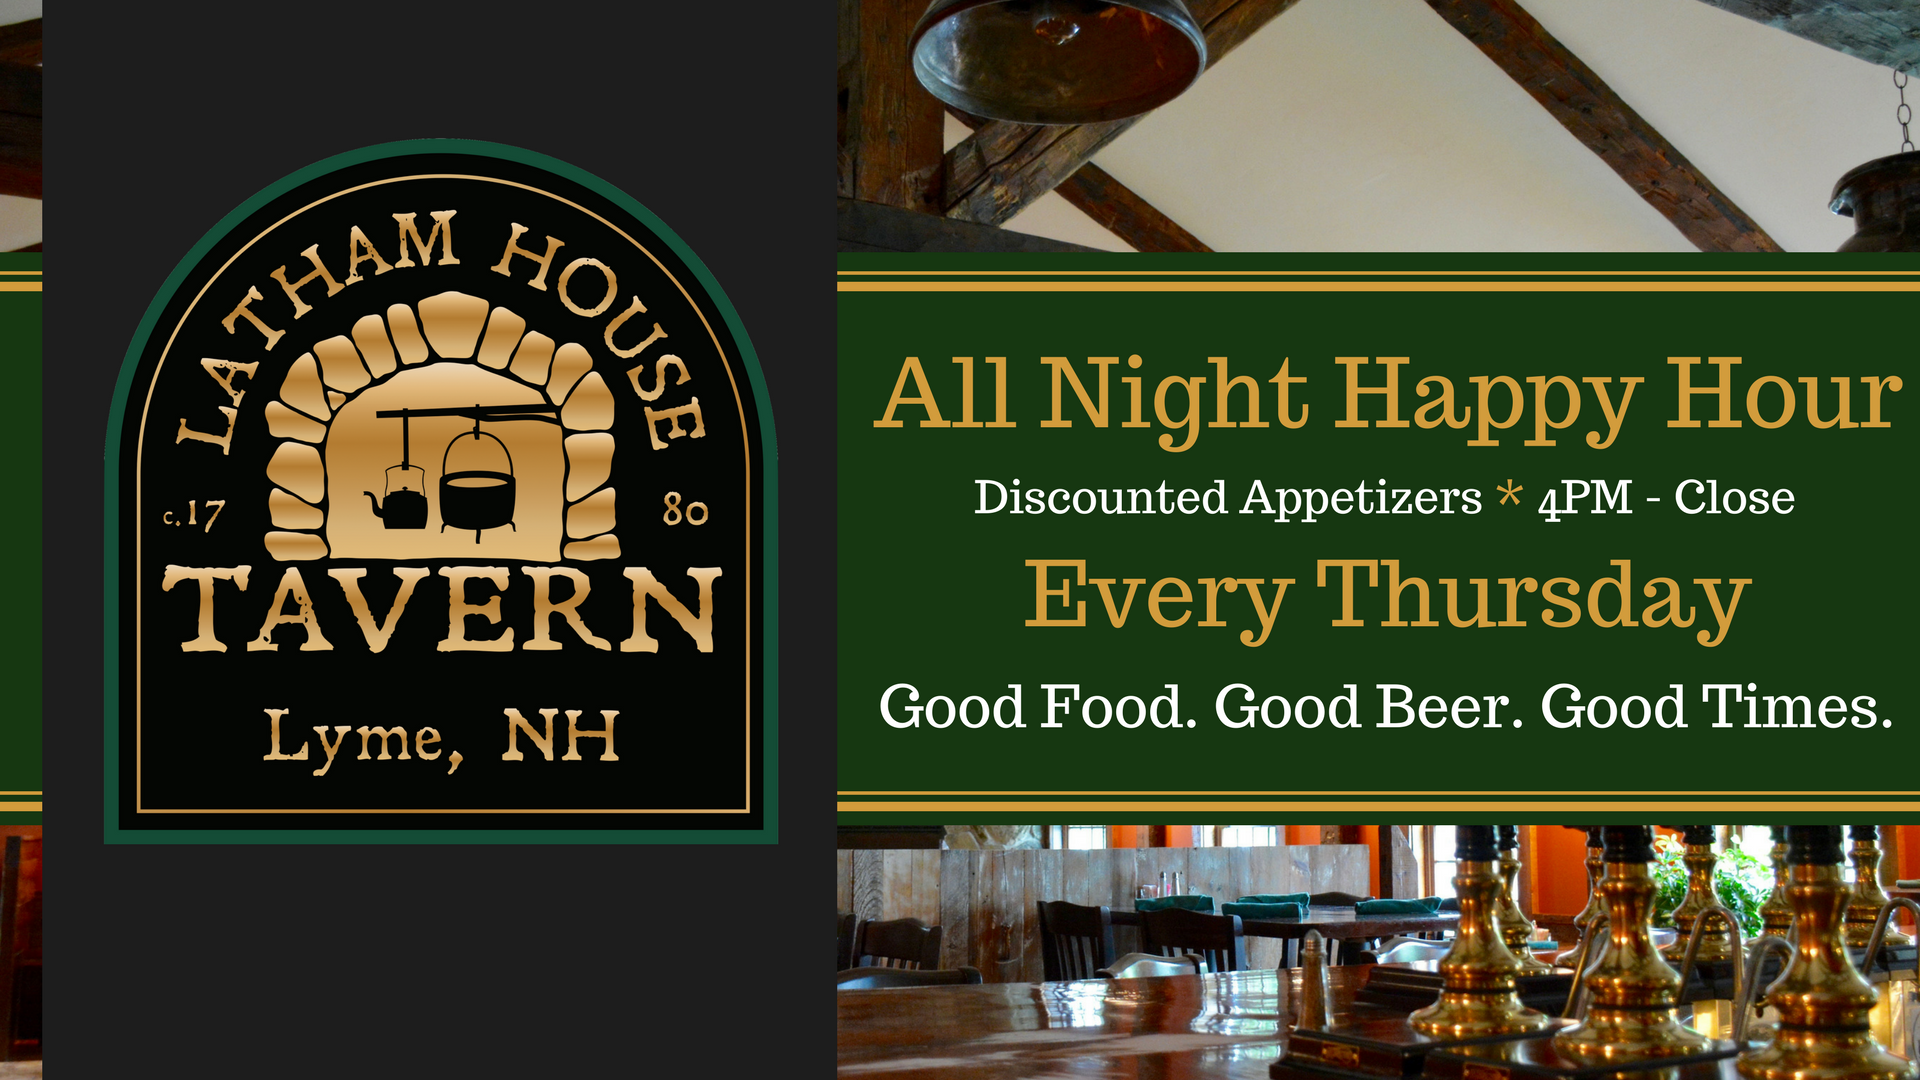 All Night Happy Hour - Facebook Cover - 1920px x 1080px (2017 STD).png